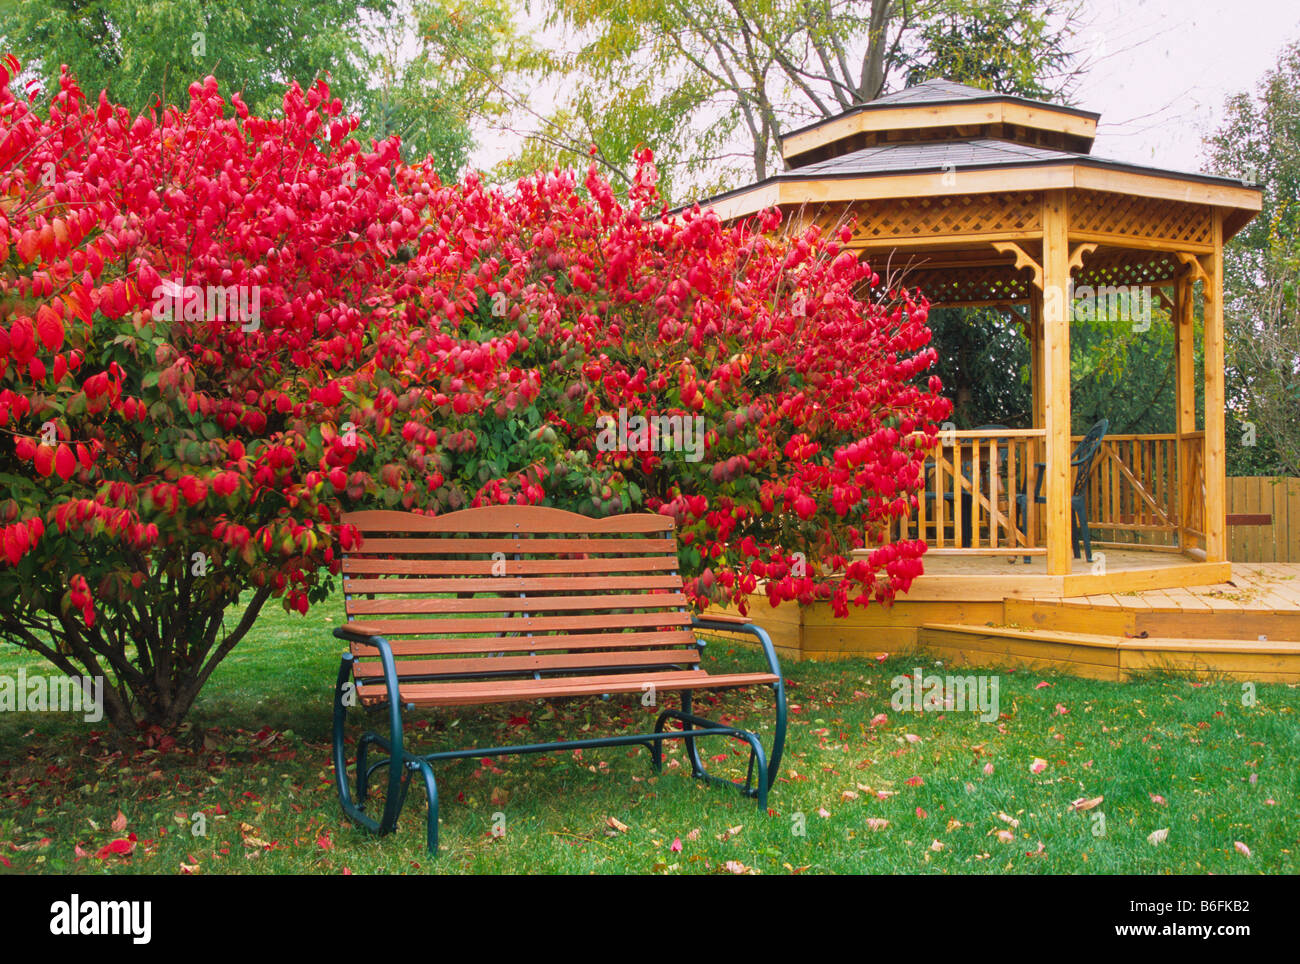 Garden Bench And Gazebo Backyard Garden Scape Tranquil Tranquility  Tranquility Calm Peaceful Harmony Red Euonymus Alatus